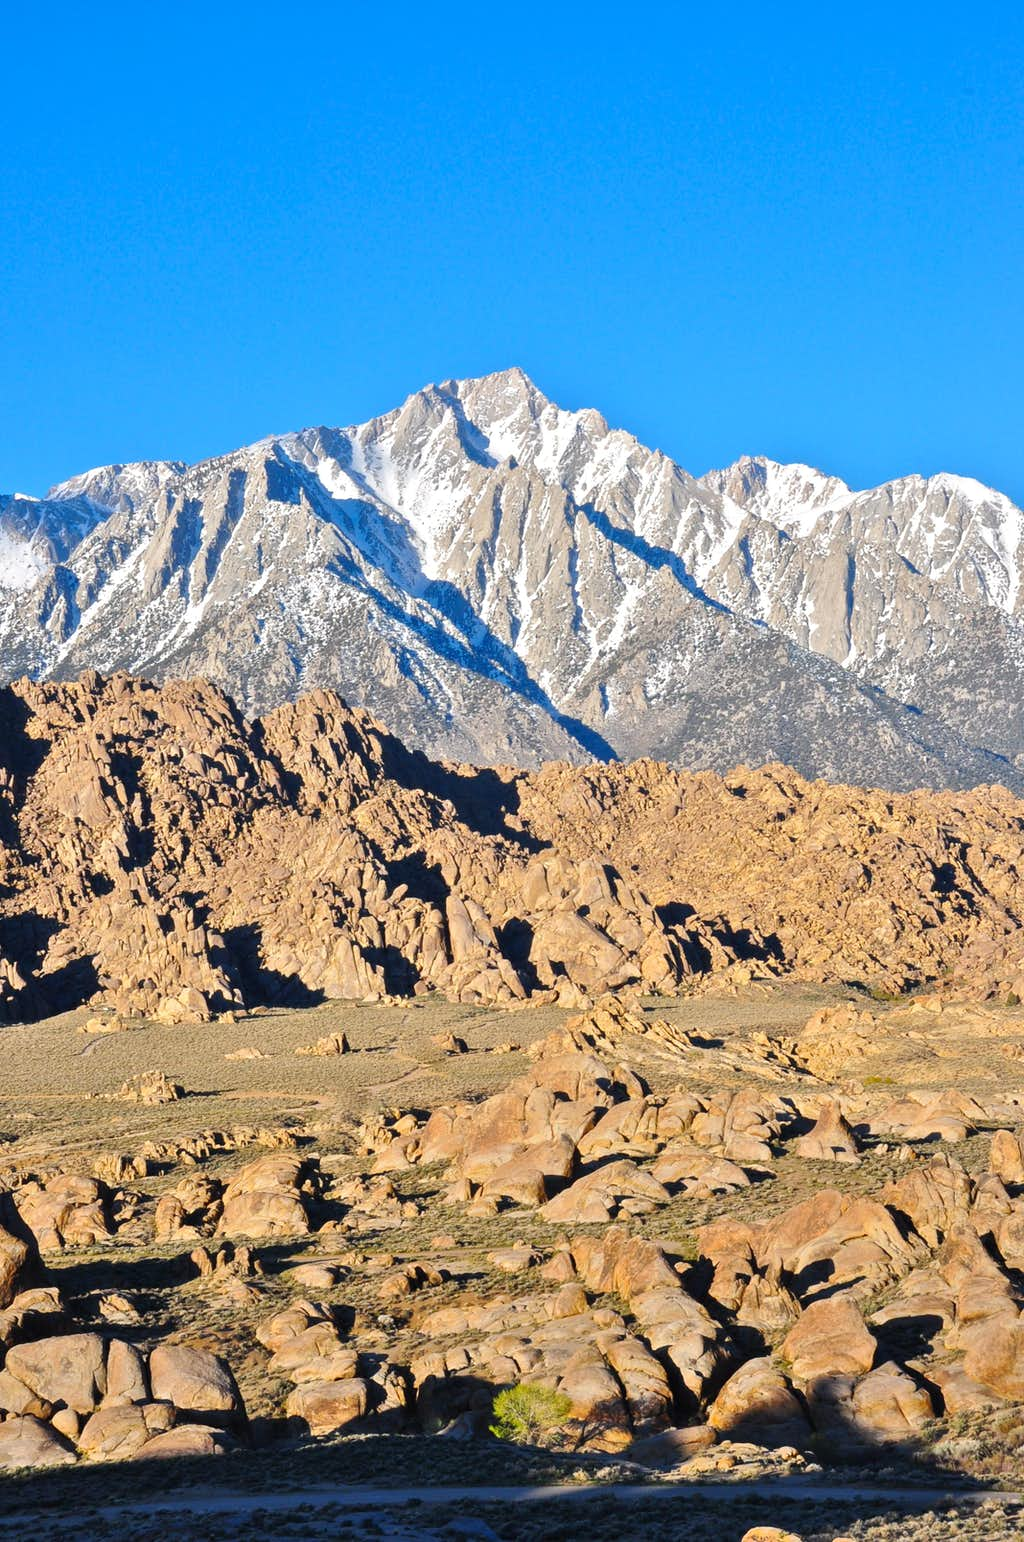 Looking down on the Alabama Hills